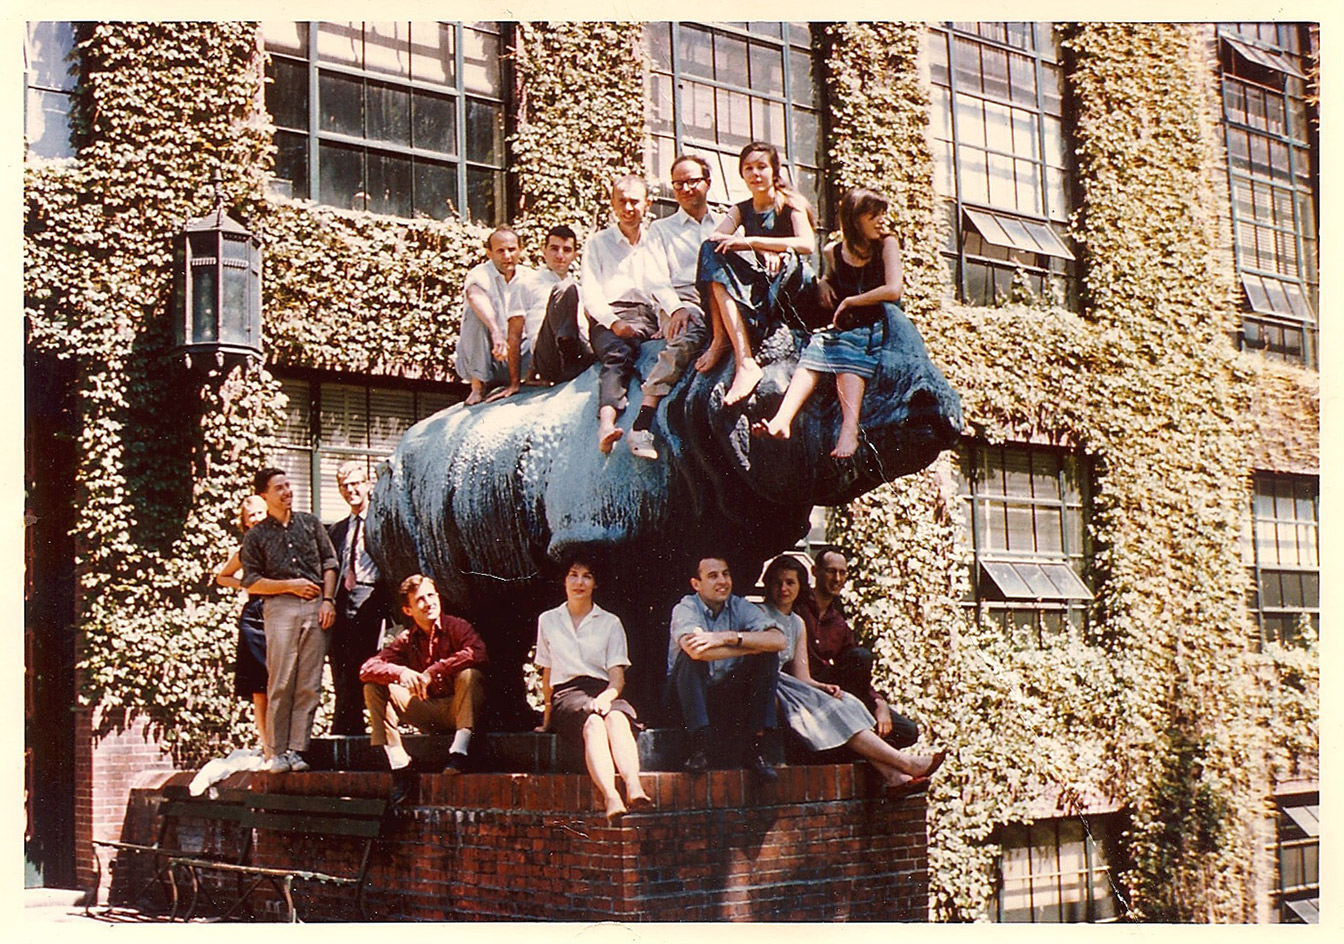 Summer lab techie Barbara Riddle (second from right, on top of rhinoceros) shares a perch with  James Watson  (third from the left, barefoot) and his research group in front of the Harvard biology labs in 1962.